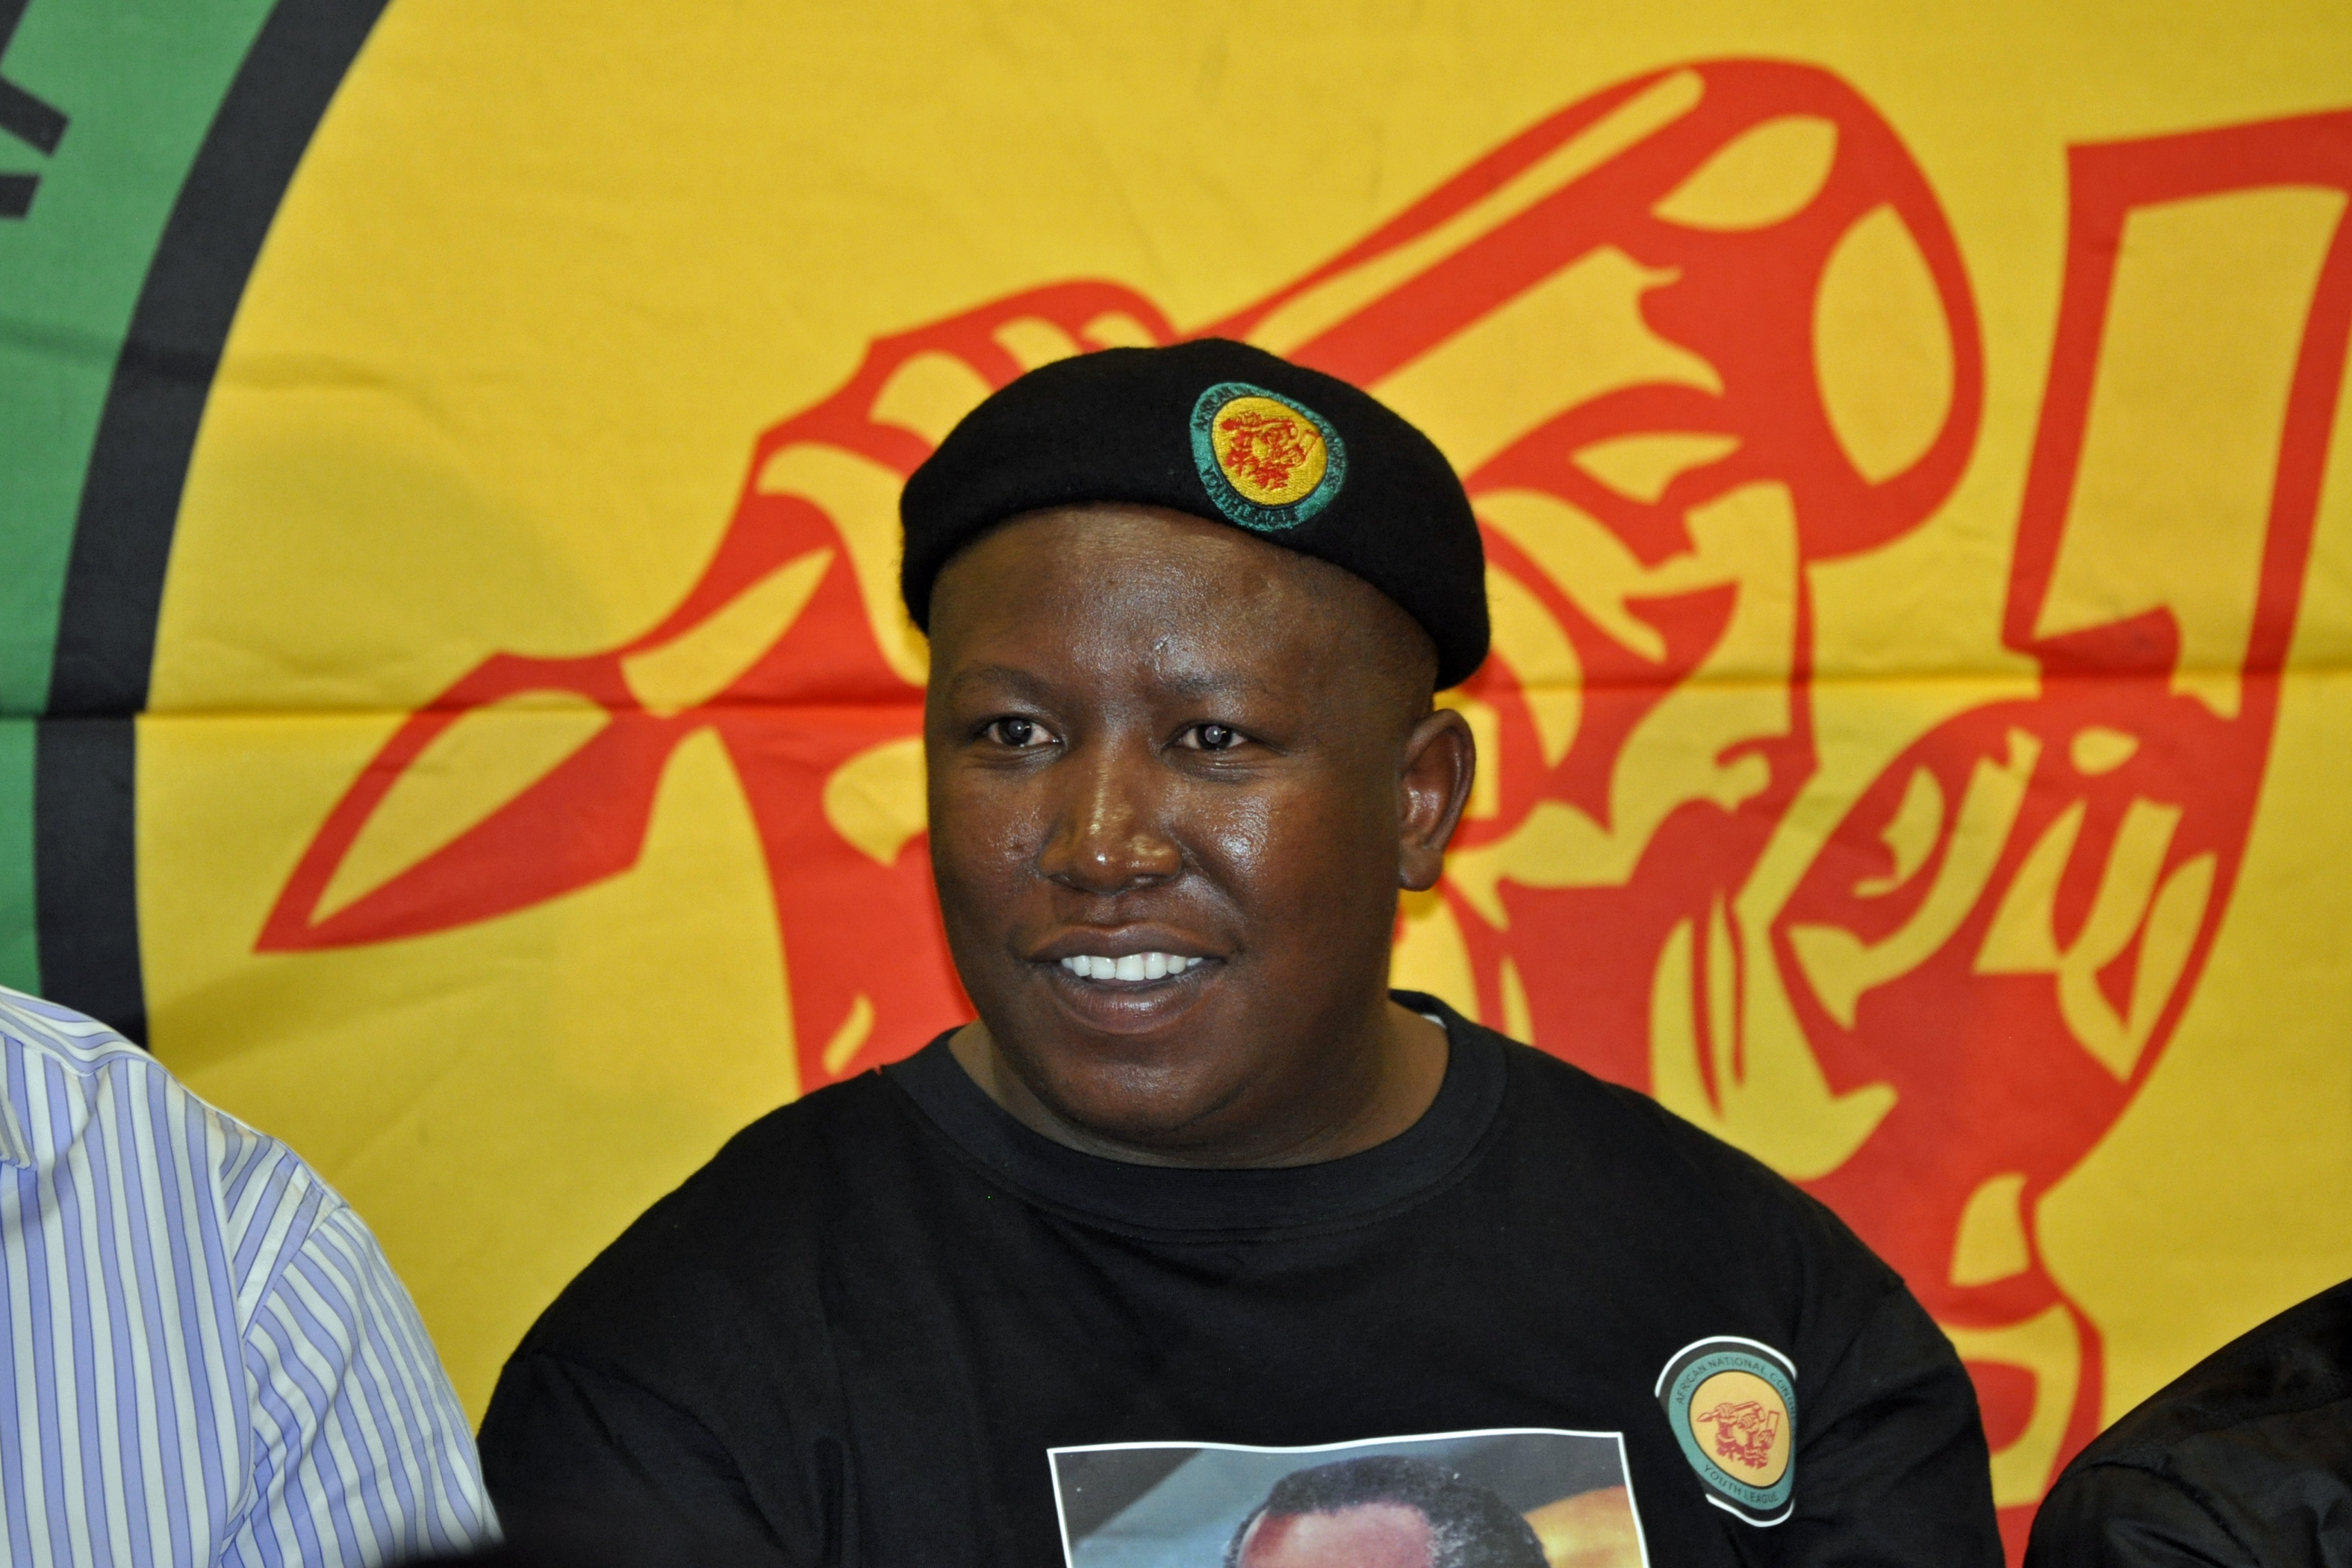 On 12 September 2011, Julius Malema, youth leader of South Africa's ruling ANC, was found guilty of hate speech for singing 'Shoot the Boer' at a number of public events.Staff reporters (11 September 2011). . The Guardian. Retrieved 11 September 2011.